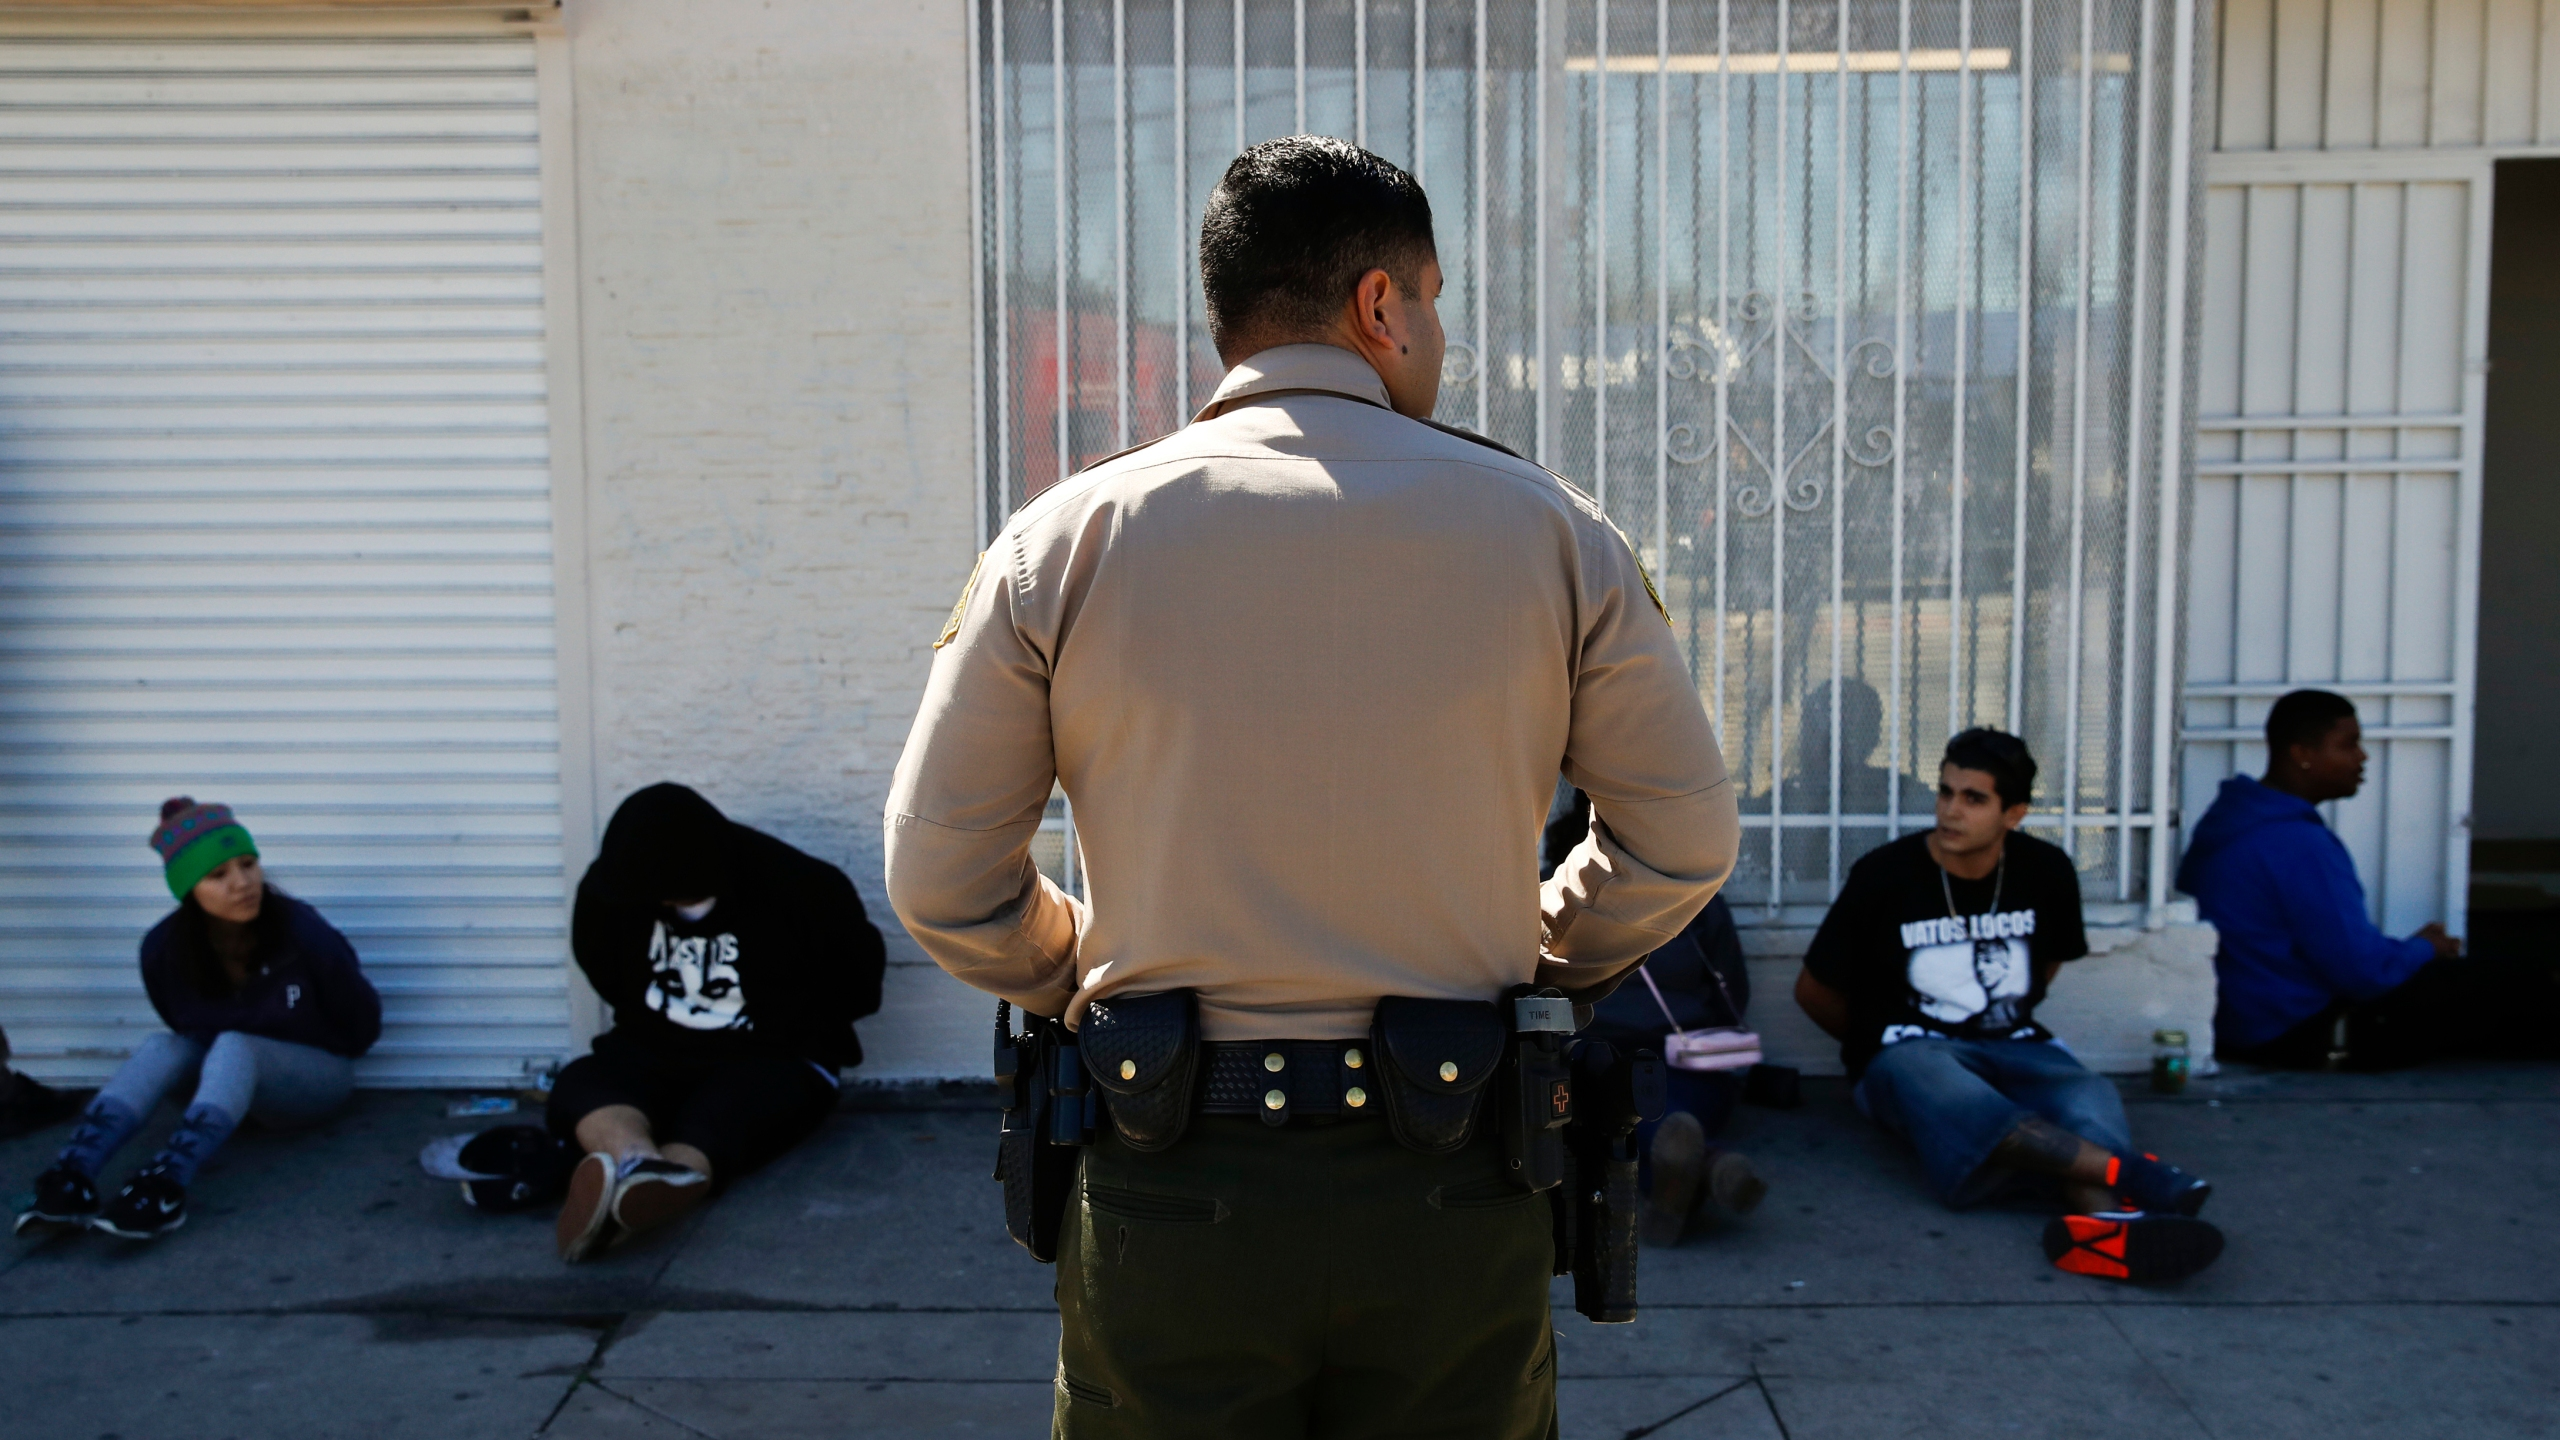 A Los Angeles County Sheriff's deputy keeps watch on a group of people apprehended at an illegal marijuana dispensary in Compton in this March 15, 2018, file photo. (Jae C. Hong / Associated Press)